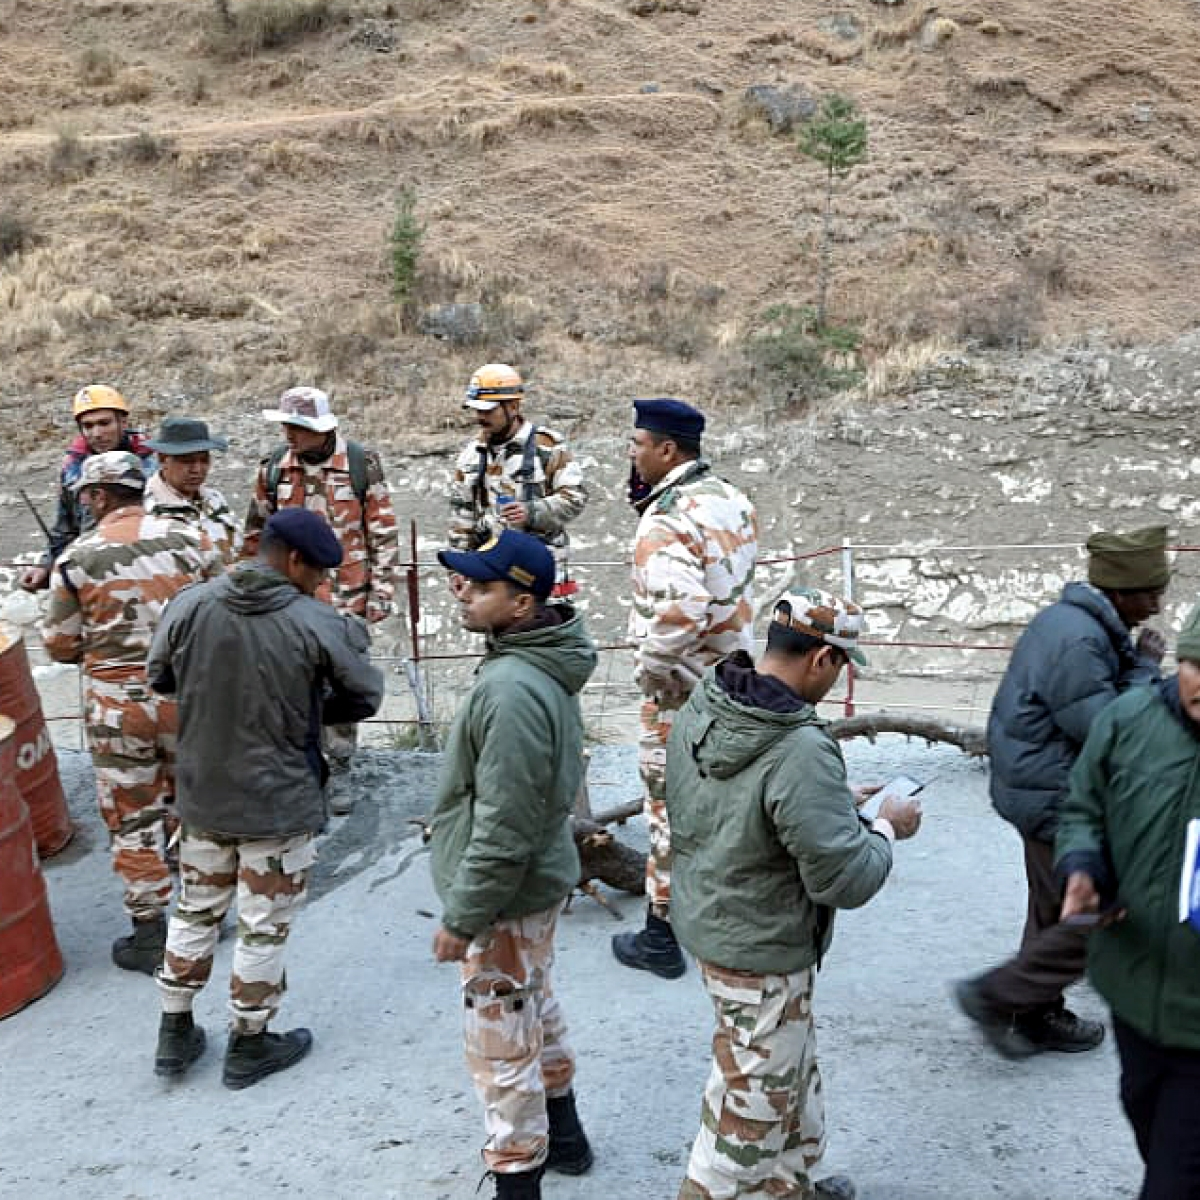 Uttarakhand glacier burst: ITBP intensifies search ops to rescue 30 people stranded at Tapovan tunnel